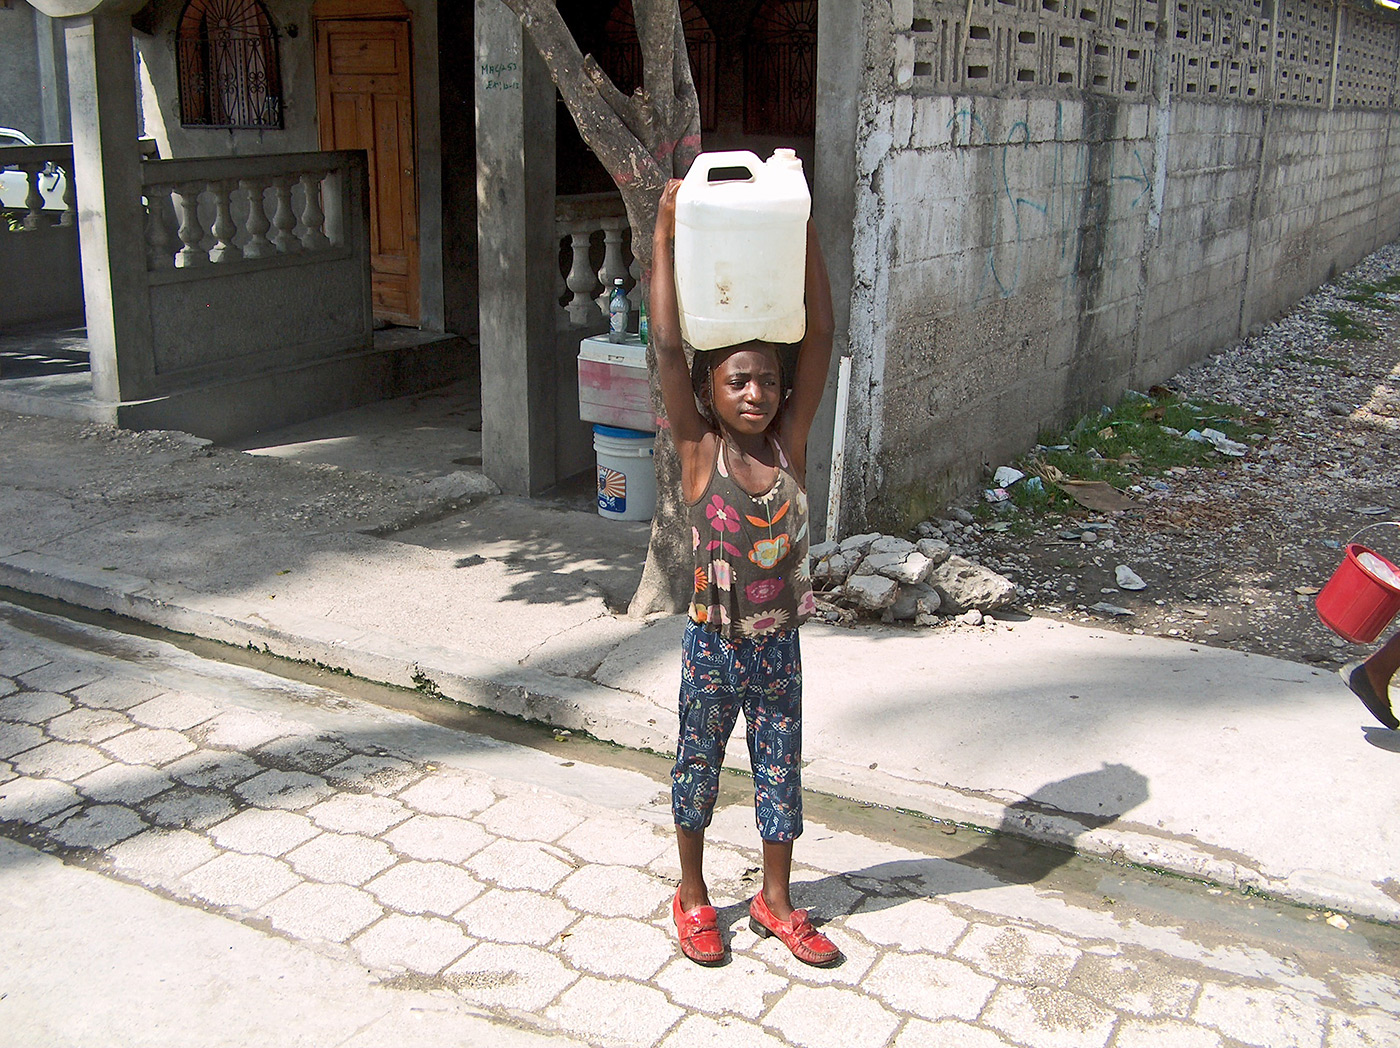 A young girl fetches contaminated water from a community well in Les Cayes, Haiti in 2013.